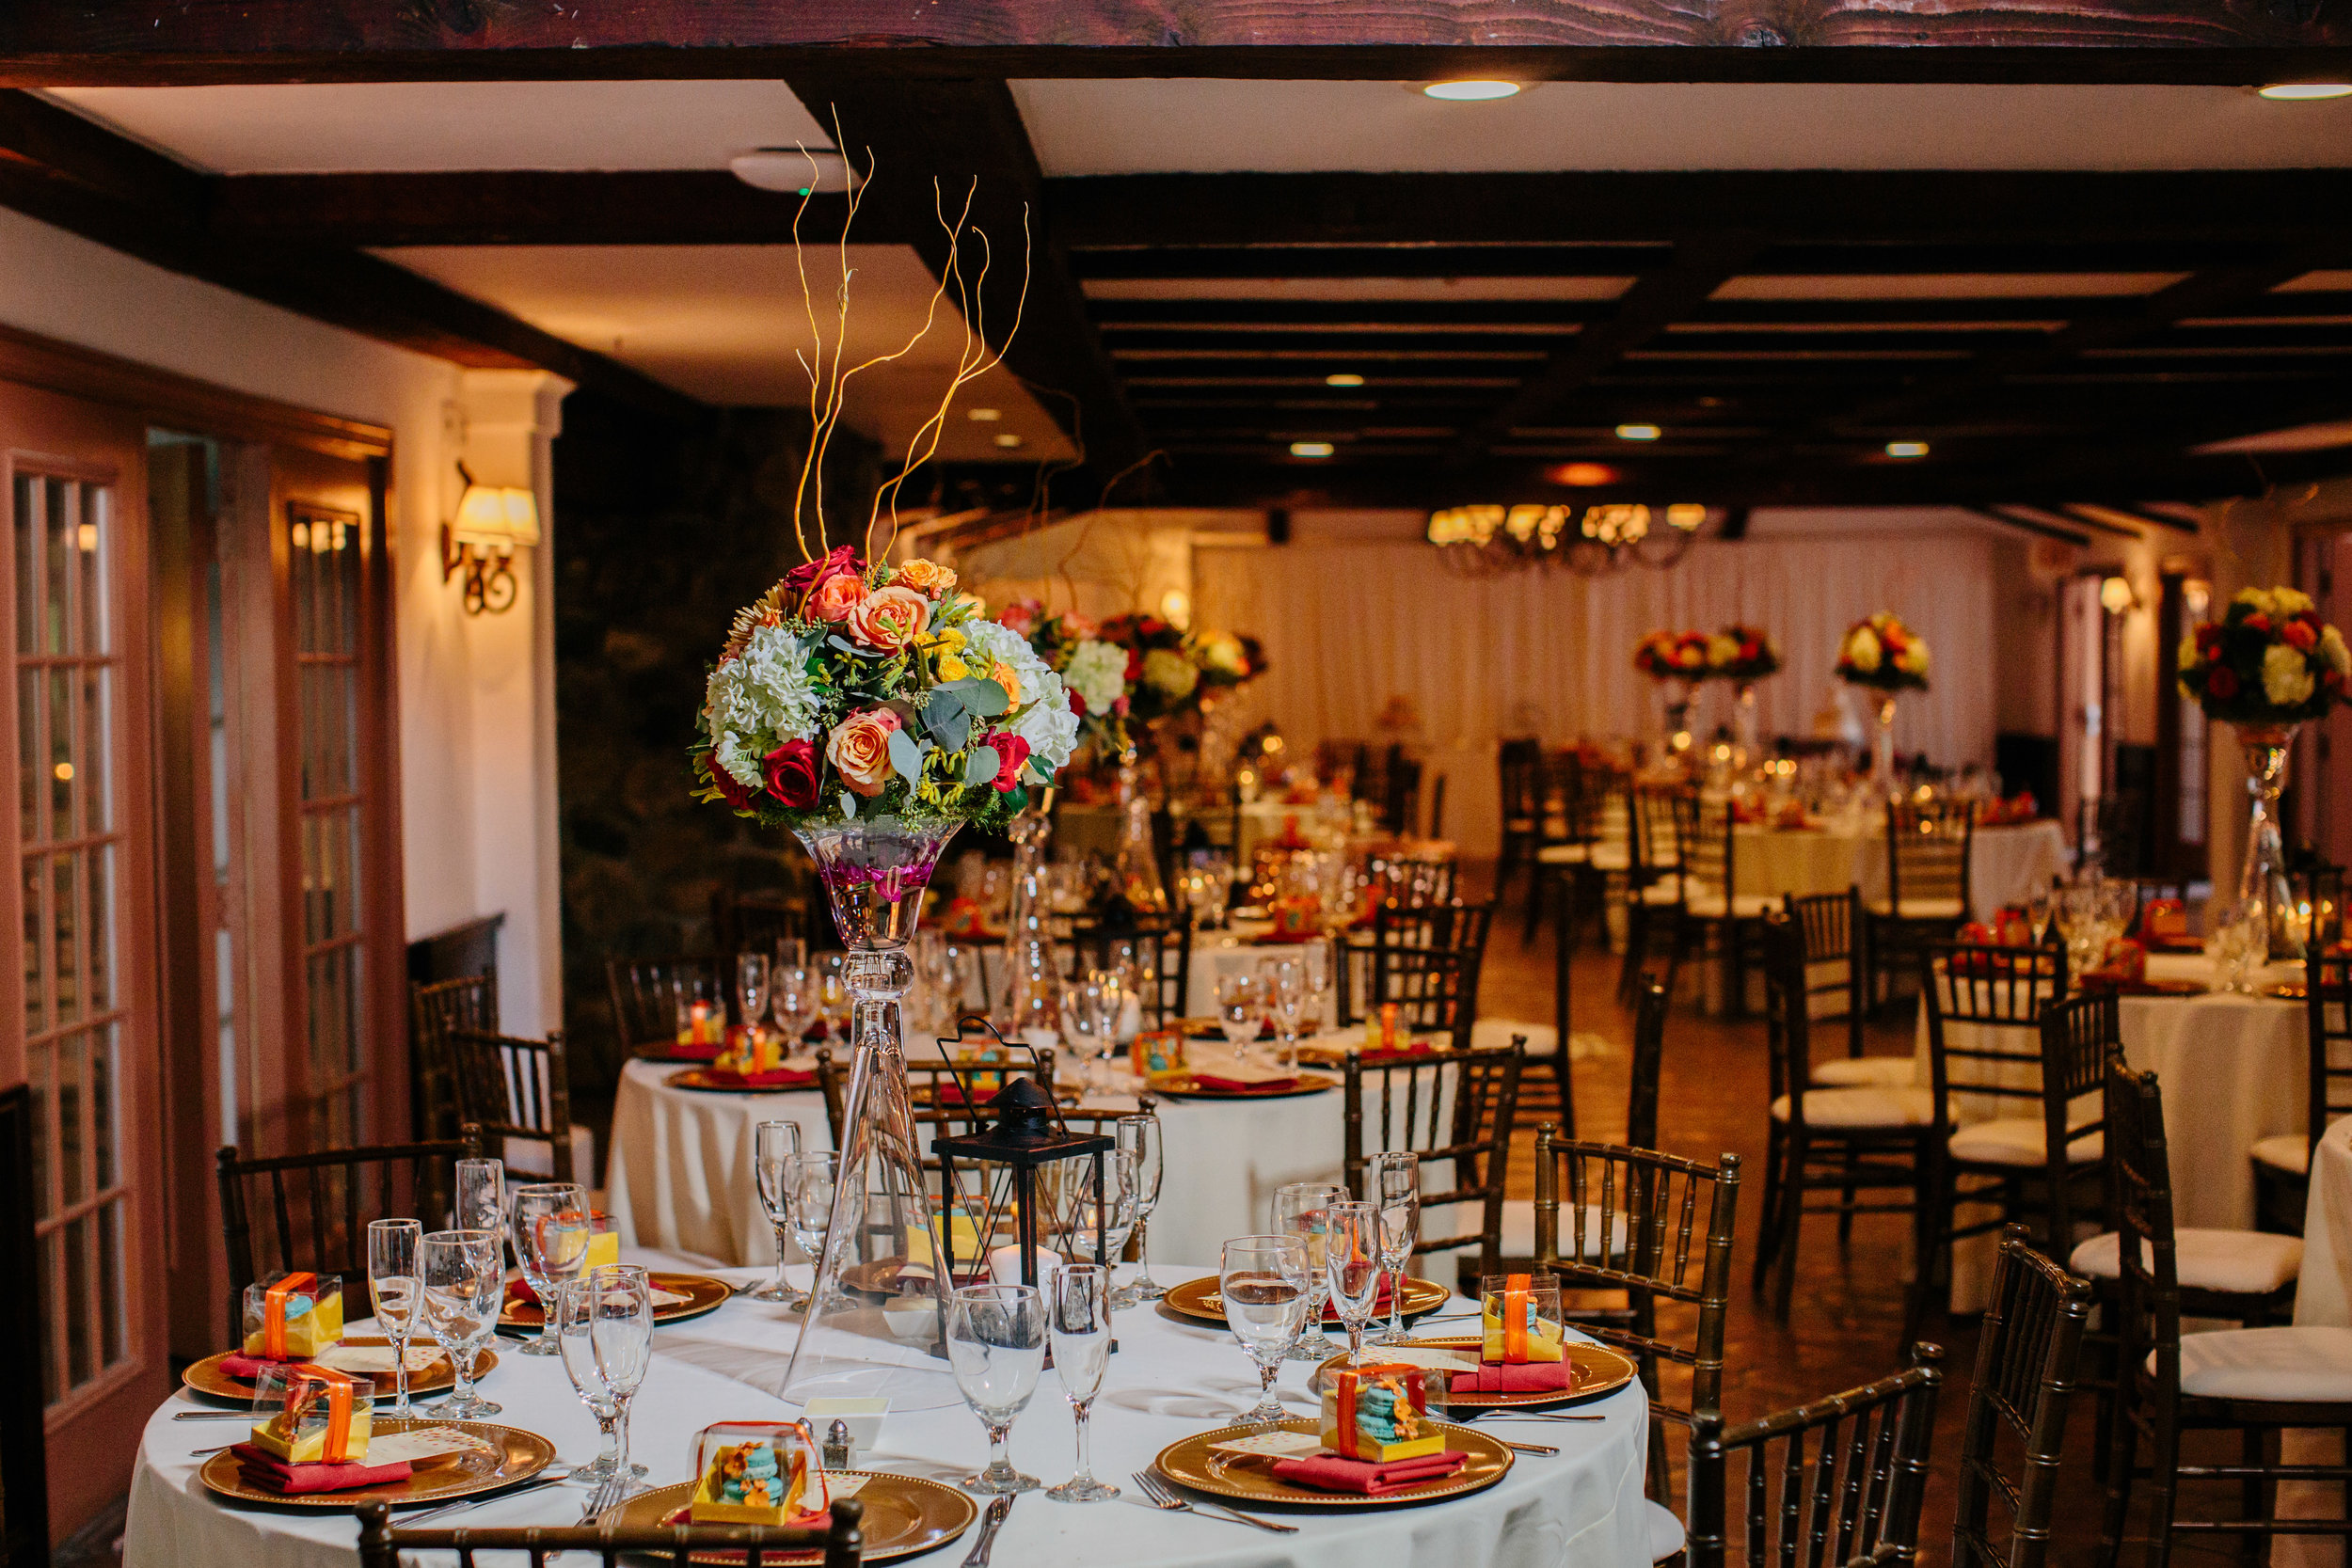 rancho-las-lomas-wedding-planner-best-wedding-planner-in-southern-california101.jpg